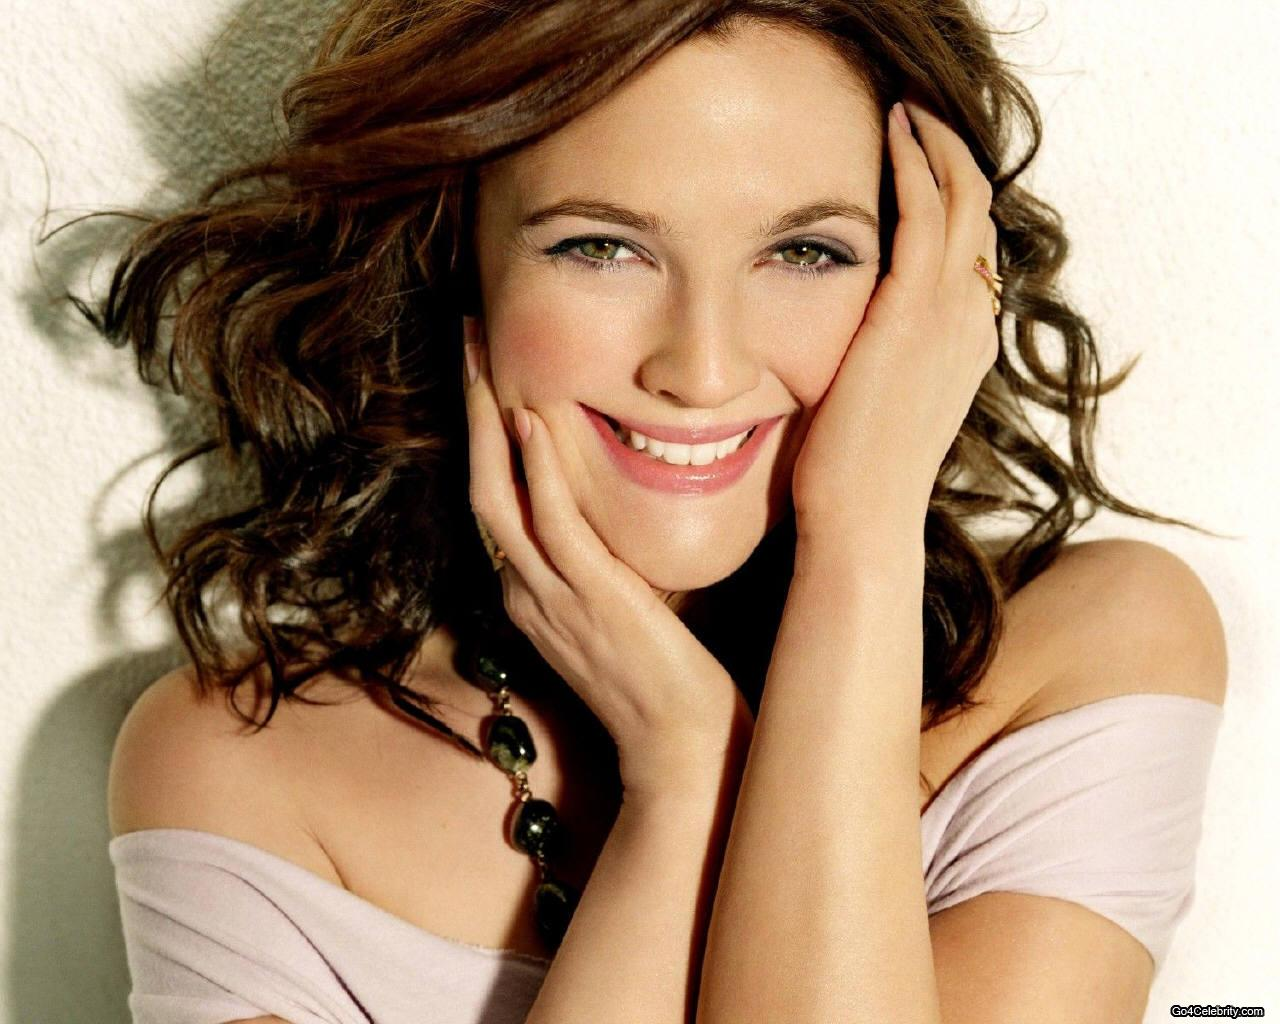 Actress Drew Barrymore - age: 42